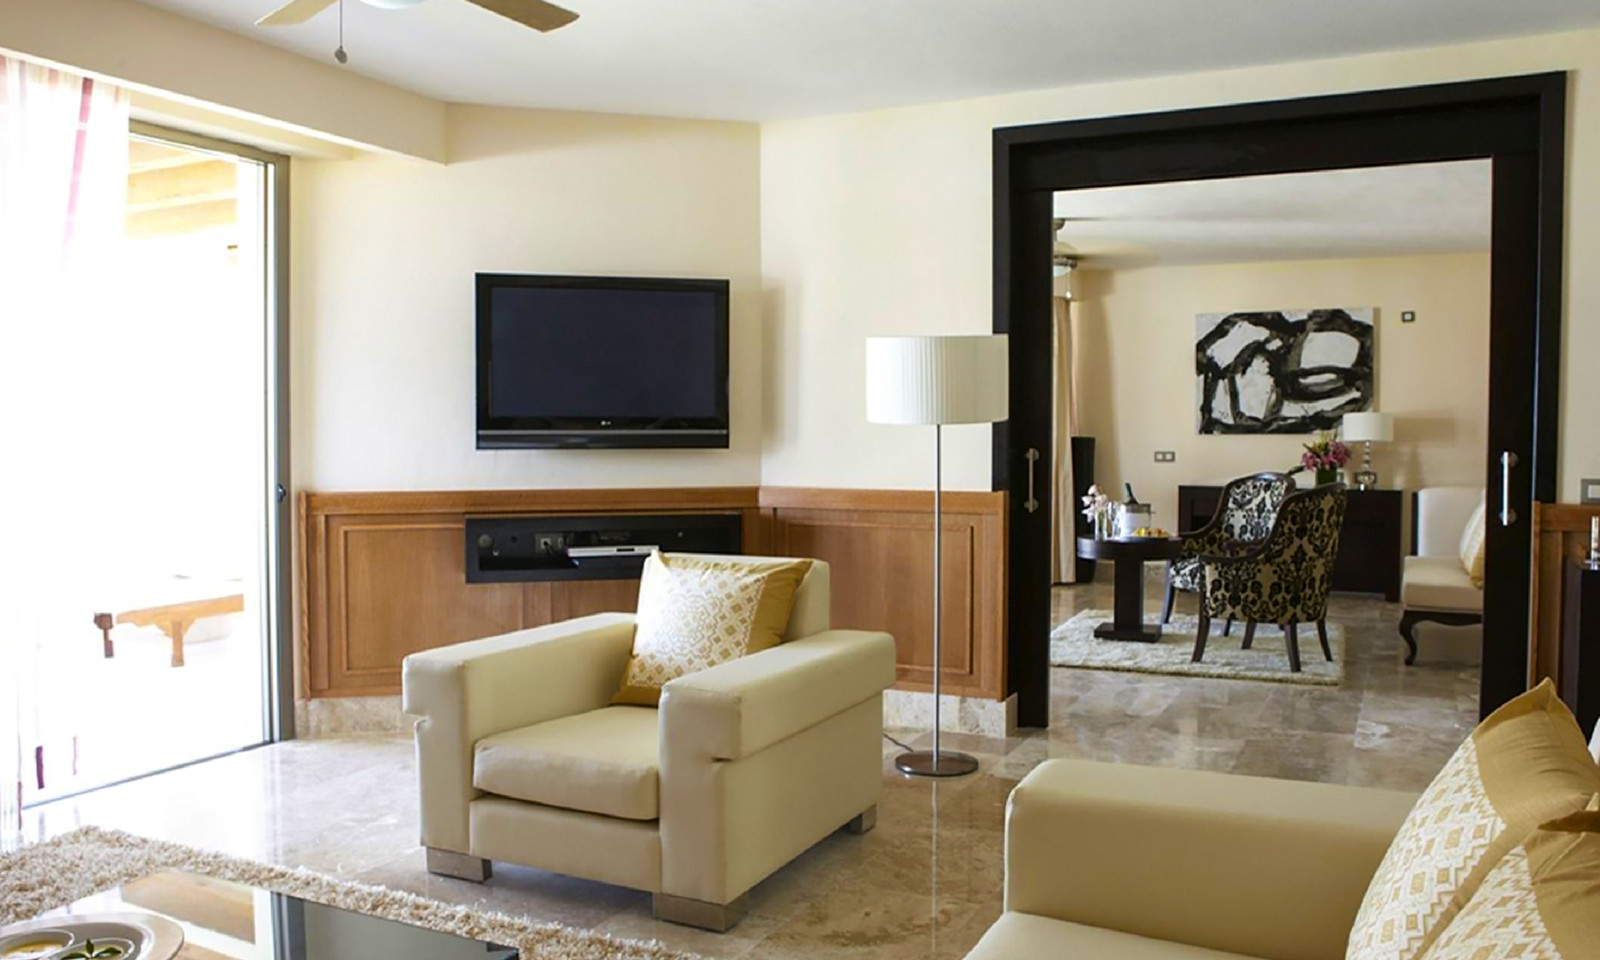 cancun-honeymoon-suites-with-jacuzzi-in-